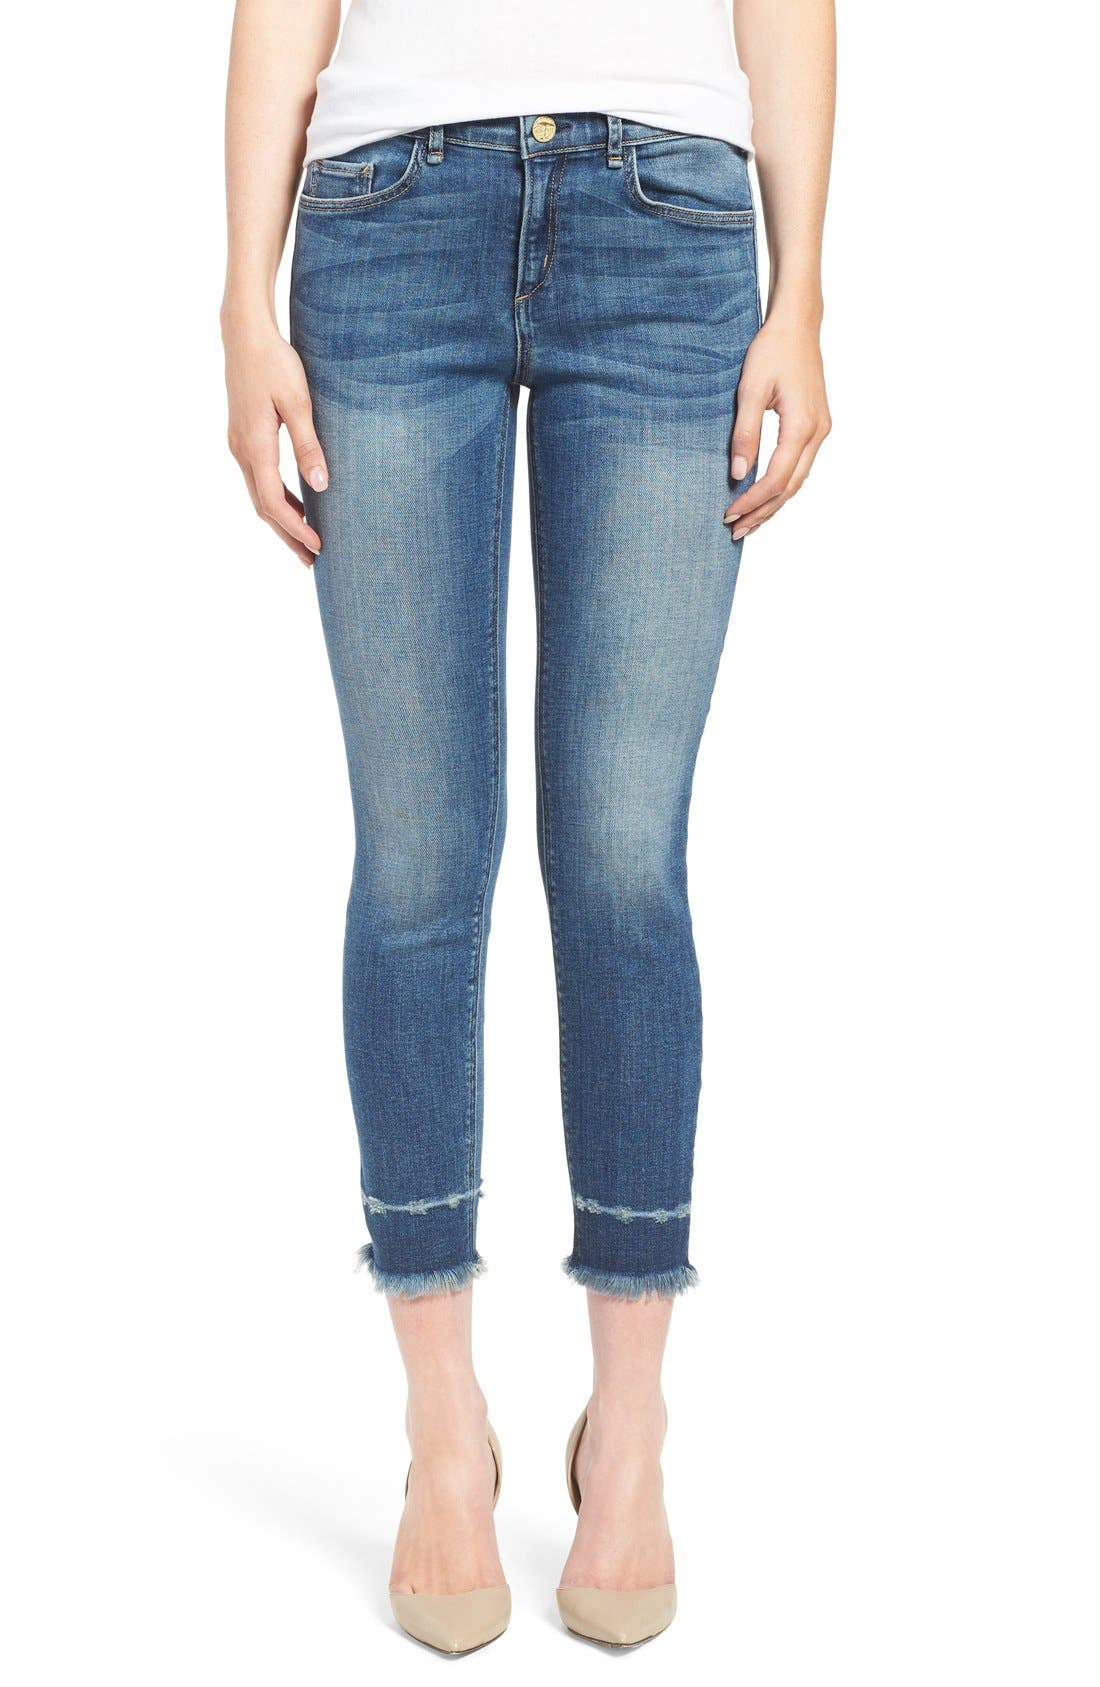 Alternate Image 1 Selected - McGuire 'Newton' Released Hem Crop Skinny Jeans (Iona)